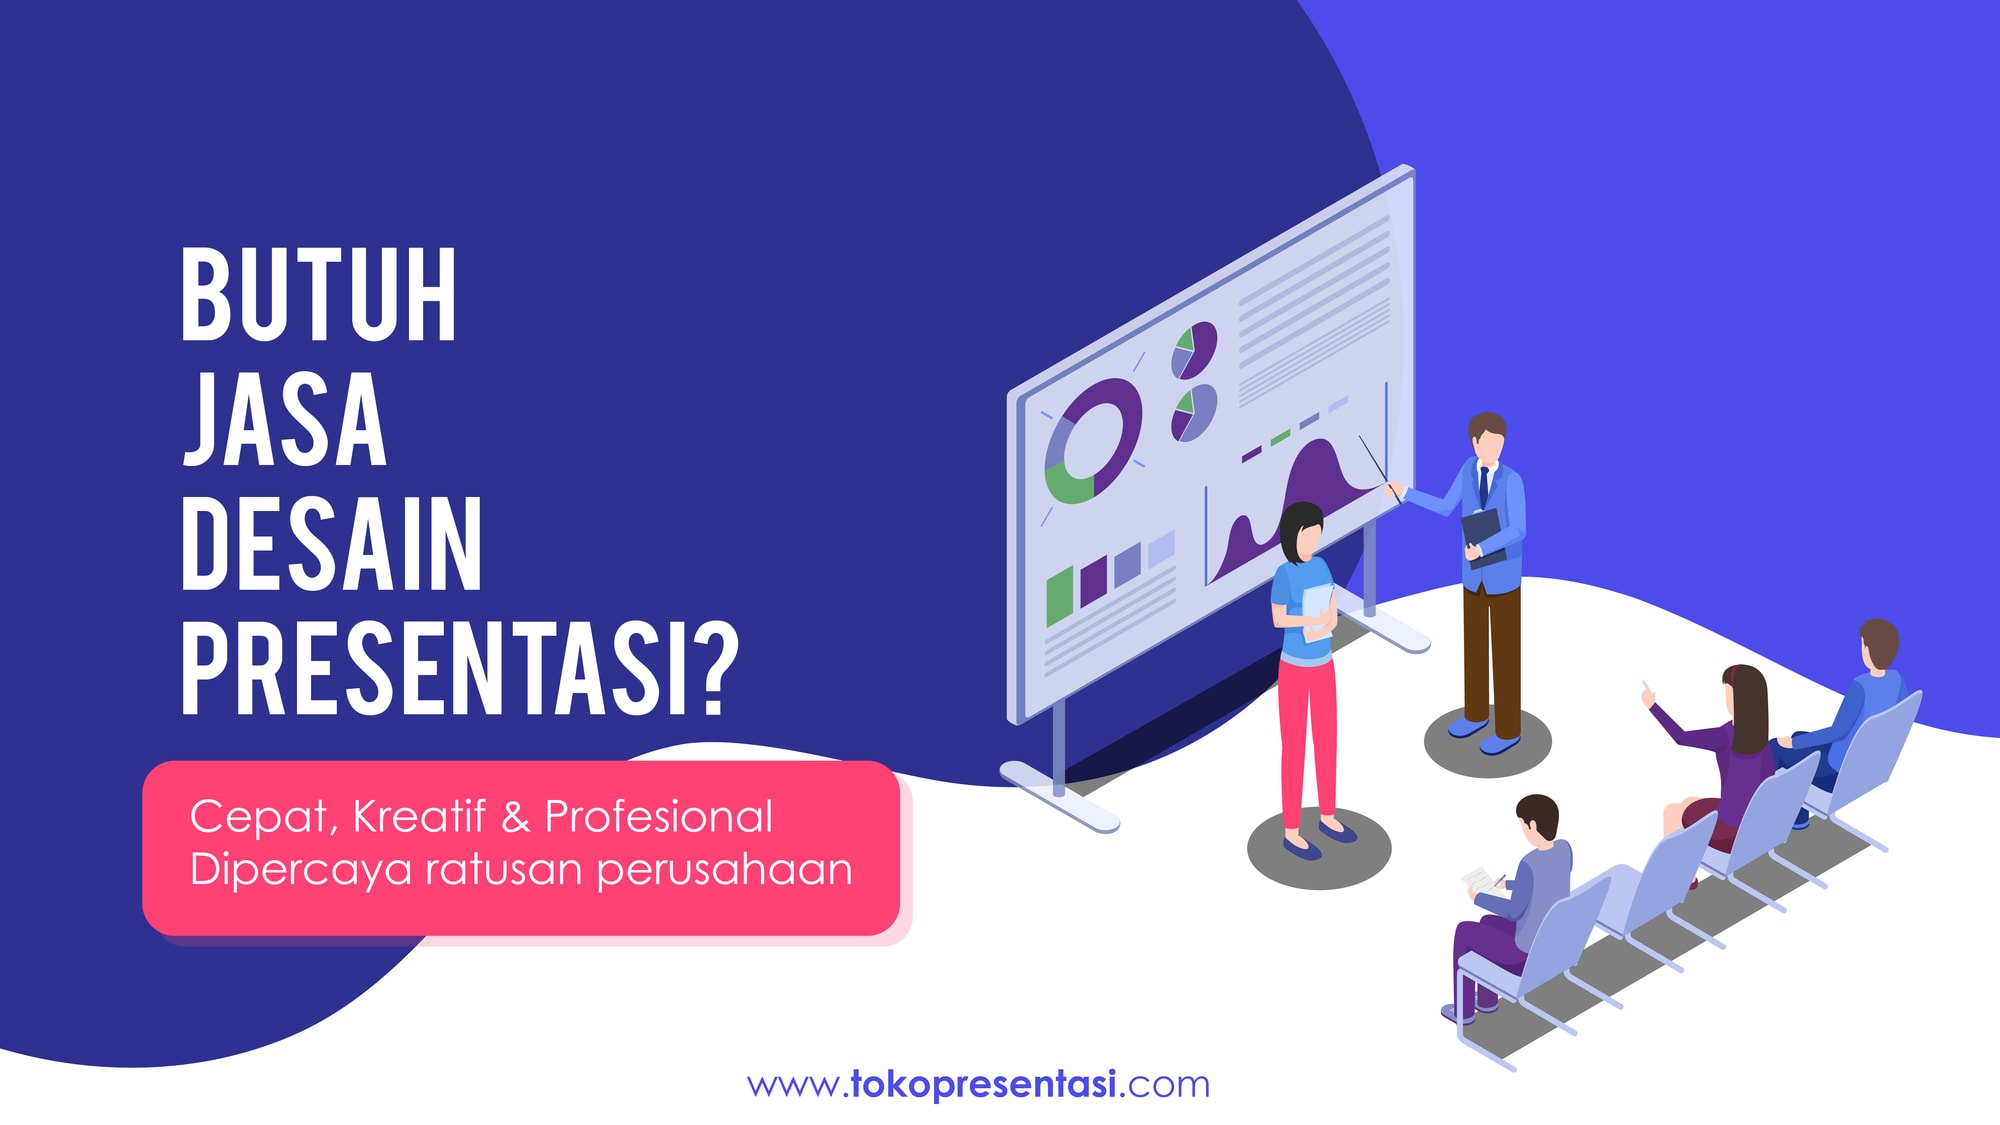 Jasa-desain-powerpoint-Work From Home-Tokopresentasi